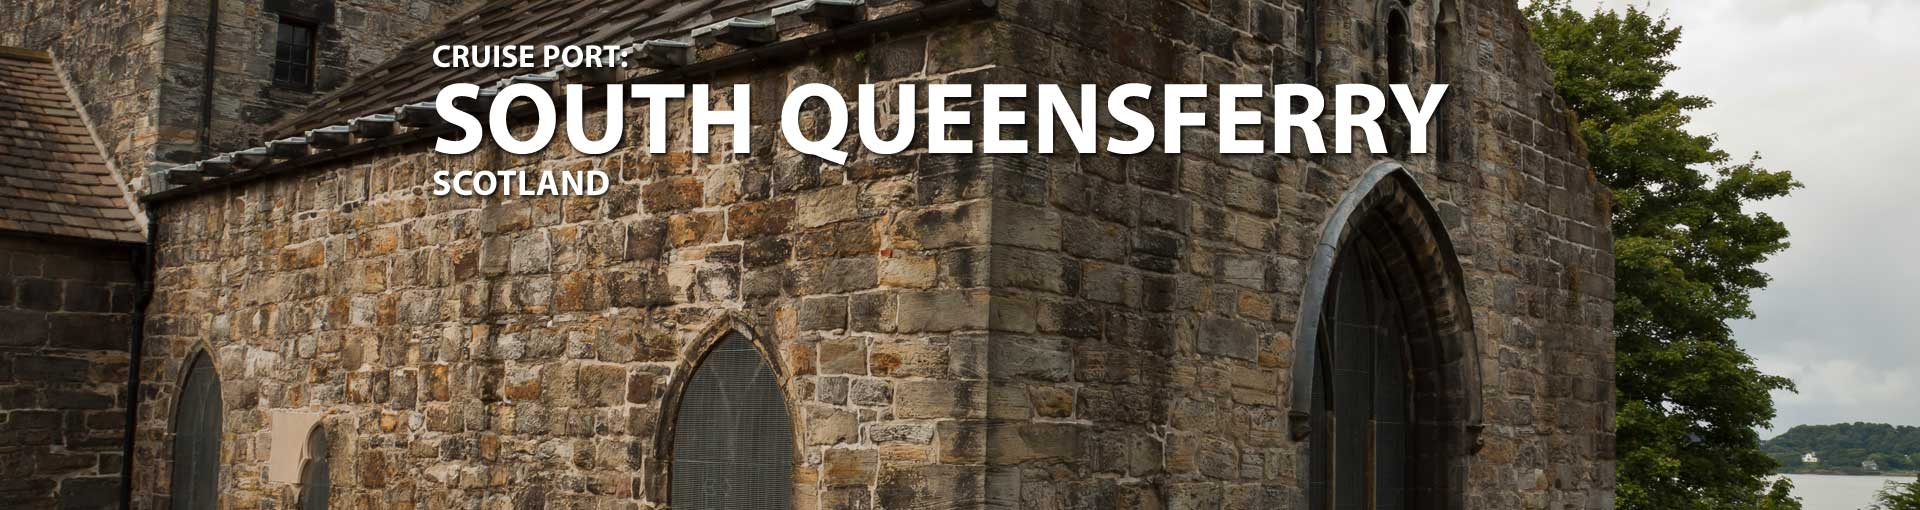 Cruises to S. Queensferry, Scotland